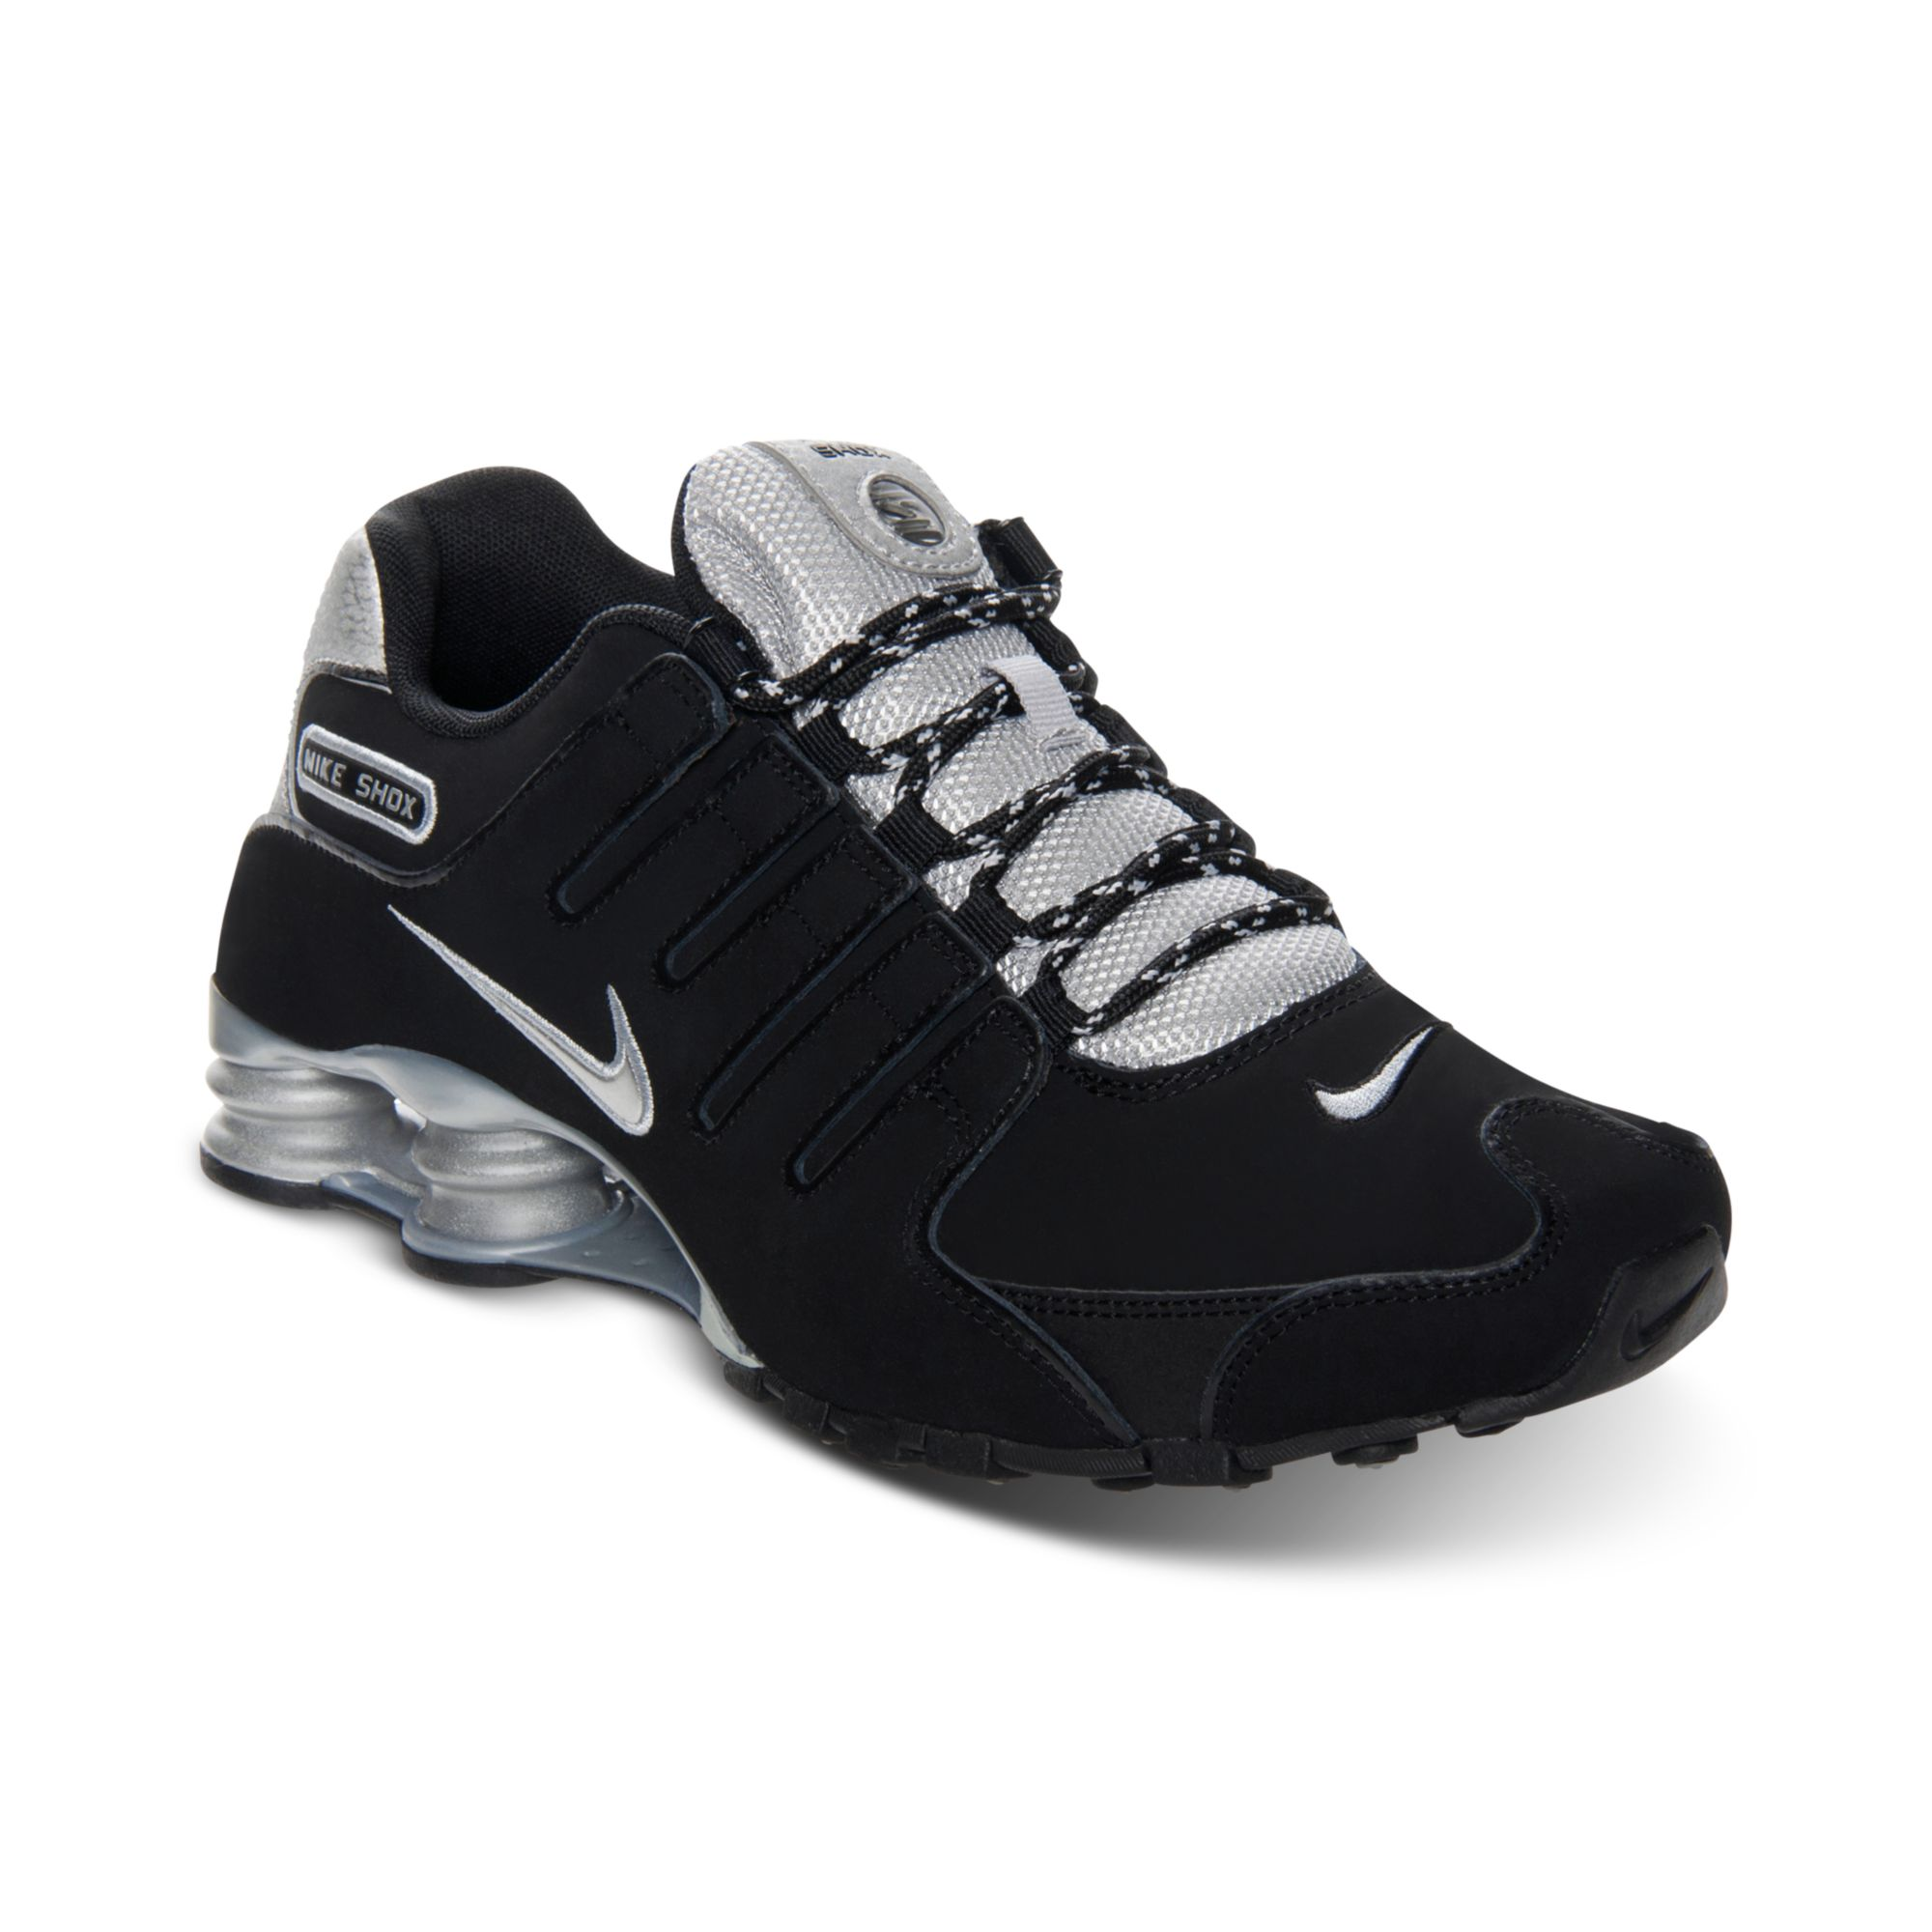 finest selection ed864 e5ac6 ... new zealand lyst nike mens shox nz eu running sneakers from finish line  in 124d4 83e2d